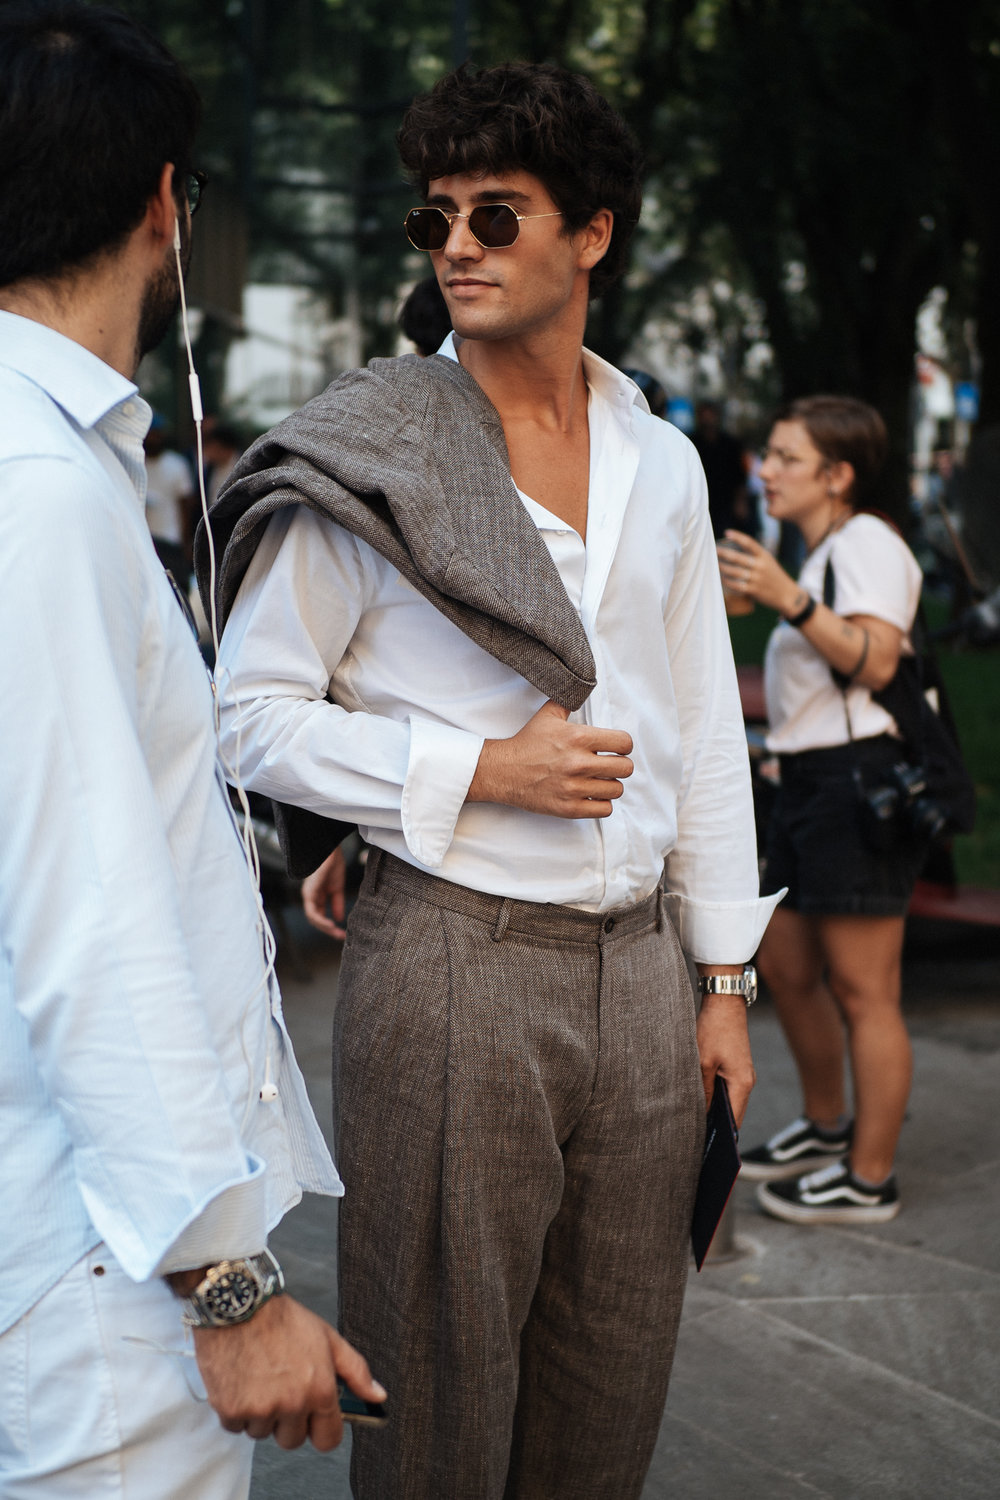 Heatwave at Milano Moda Uomo, captured on my OM-D E-M1 Mark II.